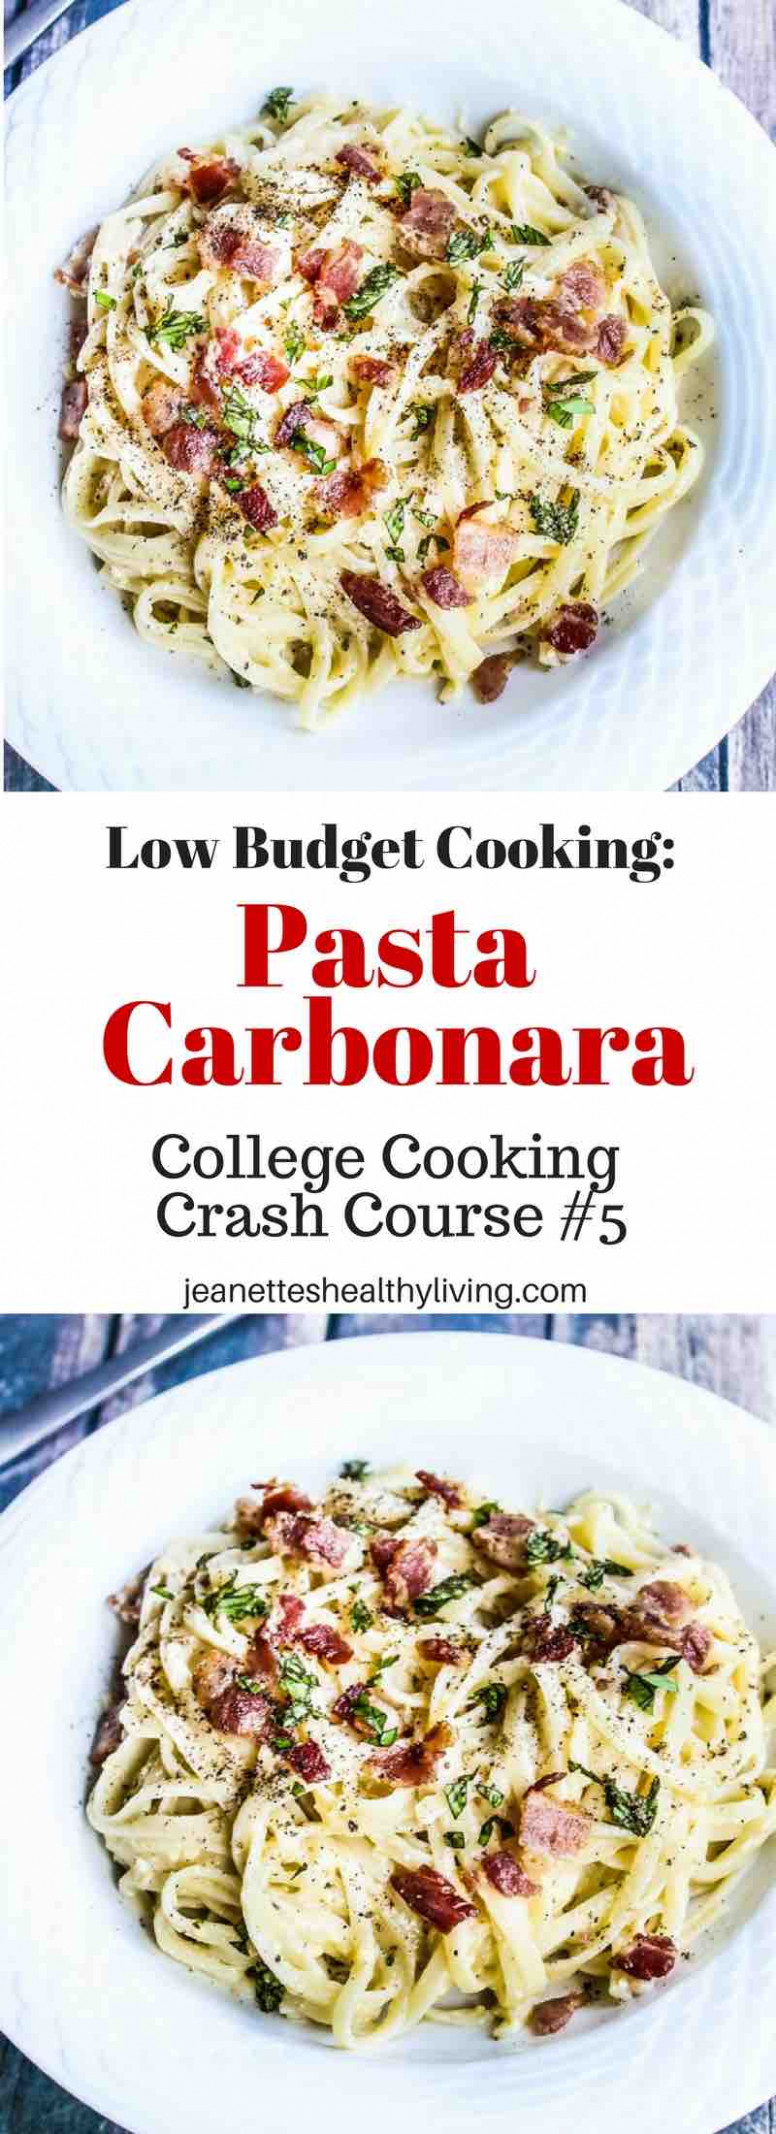 Low-Budget Cooking: Pasta Carbonara Recipe - Jeanette's ...